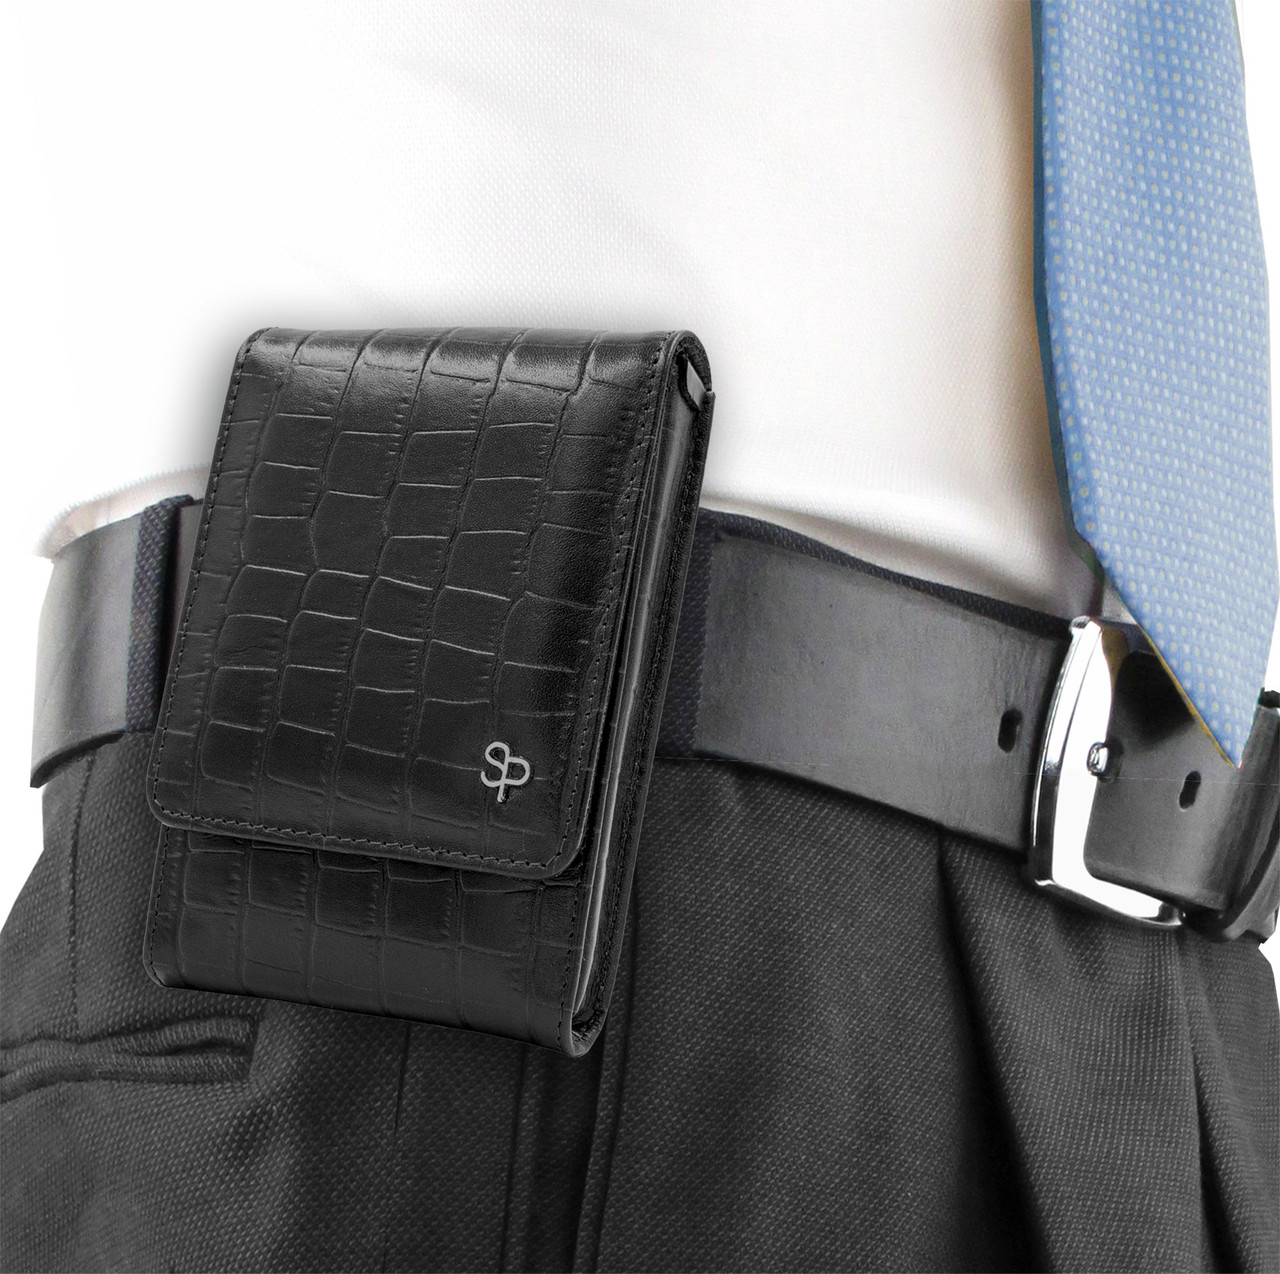 Walther PPQ Sub-Compact Black Alligator Series Holster